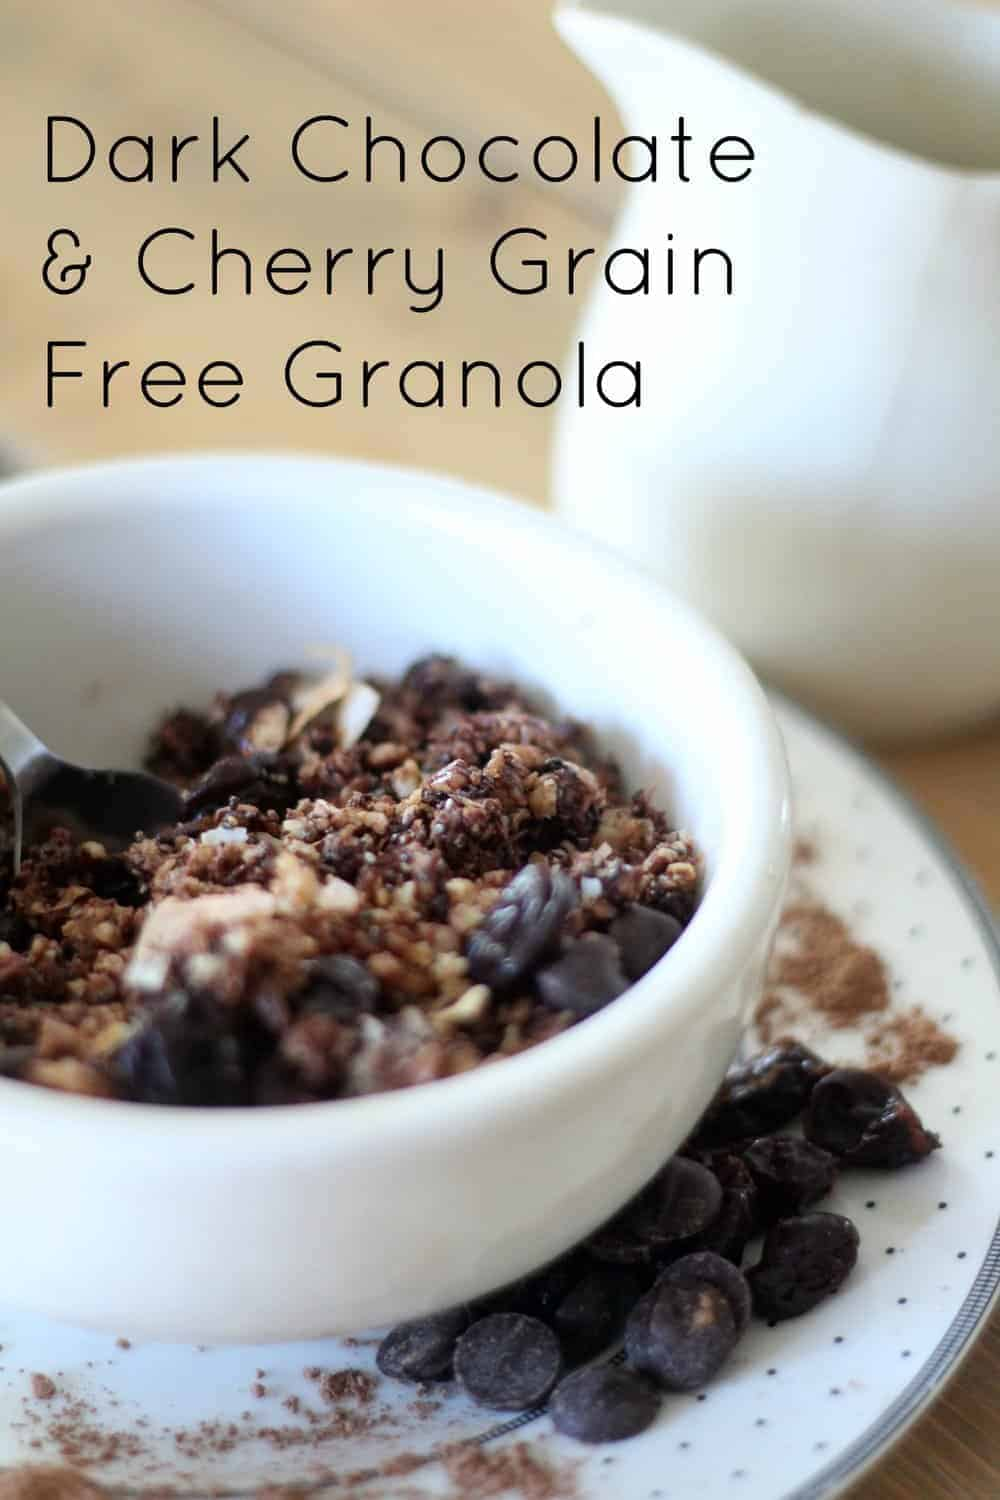 a white bowl filled with grain-free granola with chocolate chips and cherries on a silver and white polka dot plate